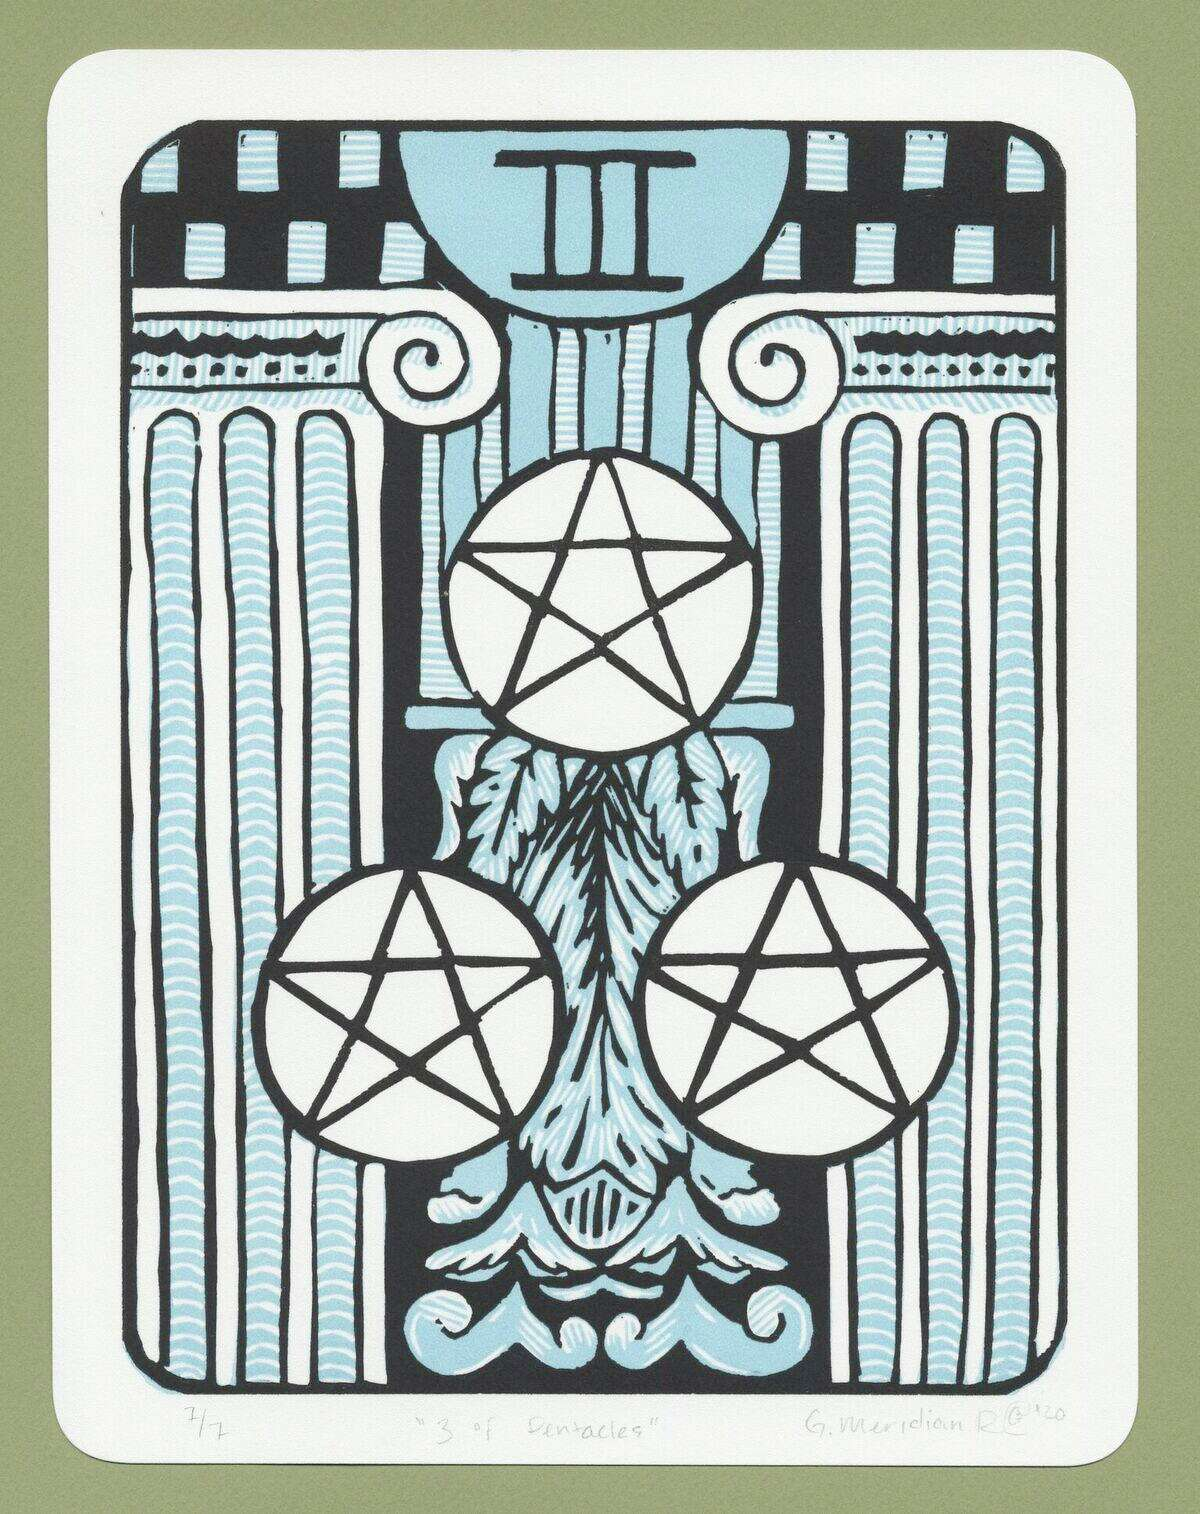 Gabrielle Raulinaitis' 3 of Pentacles will be included in the Witchy exhibit at the Ely Center for Contemporary Art through April 19.